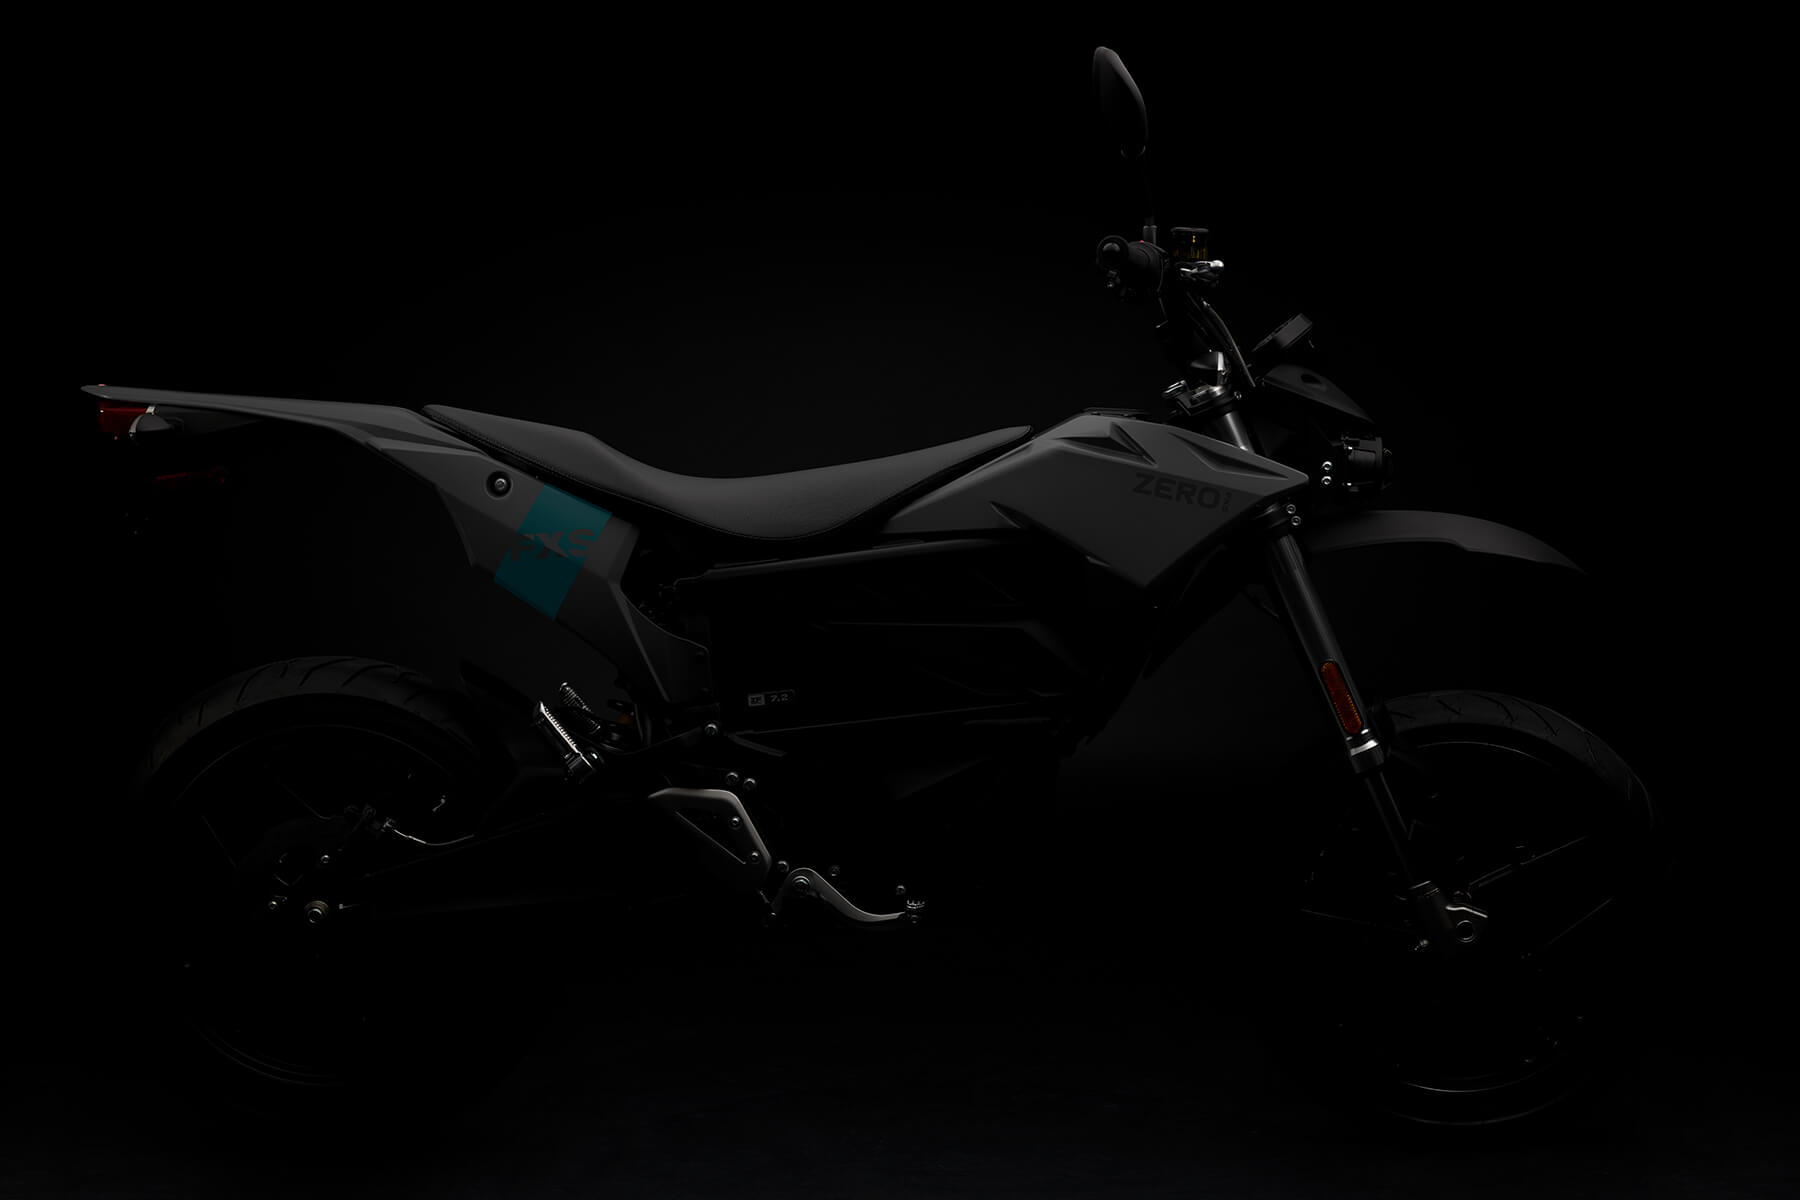 Pleasing Zero Fxs Electric Motorcycle Zero Motorcycles Gamerscity Chair Design For Home Gamerscityorg